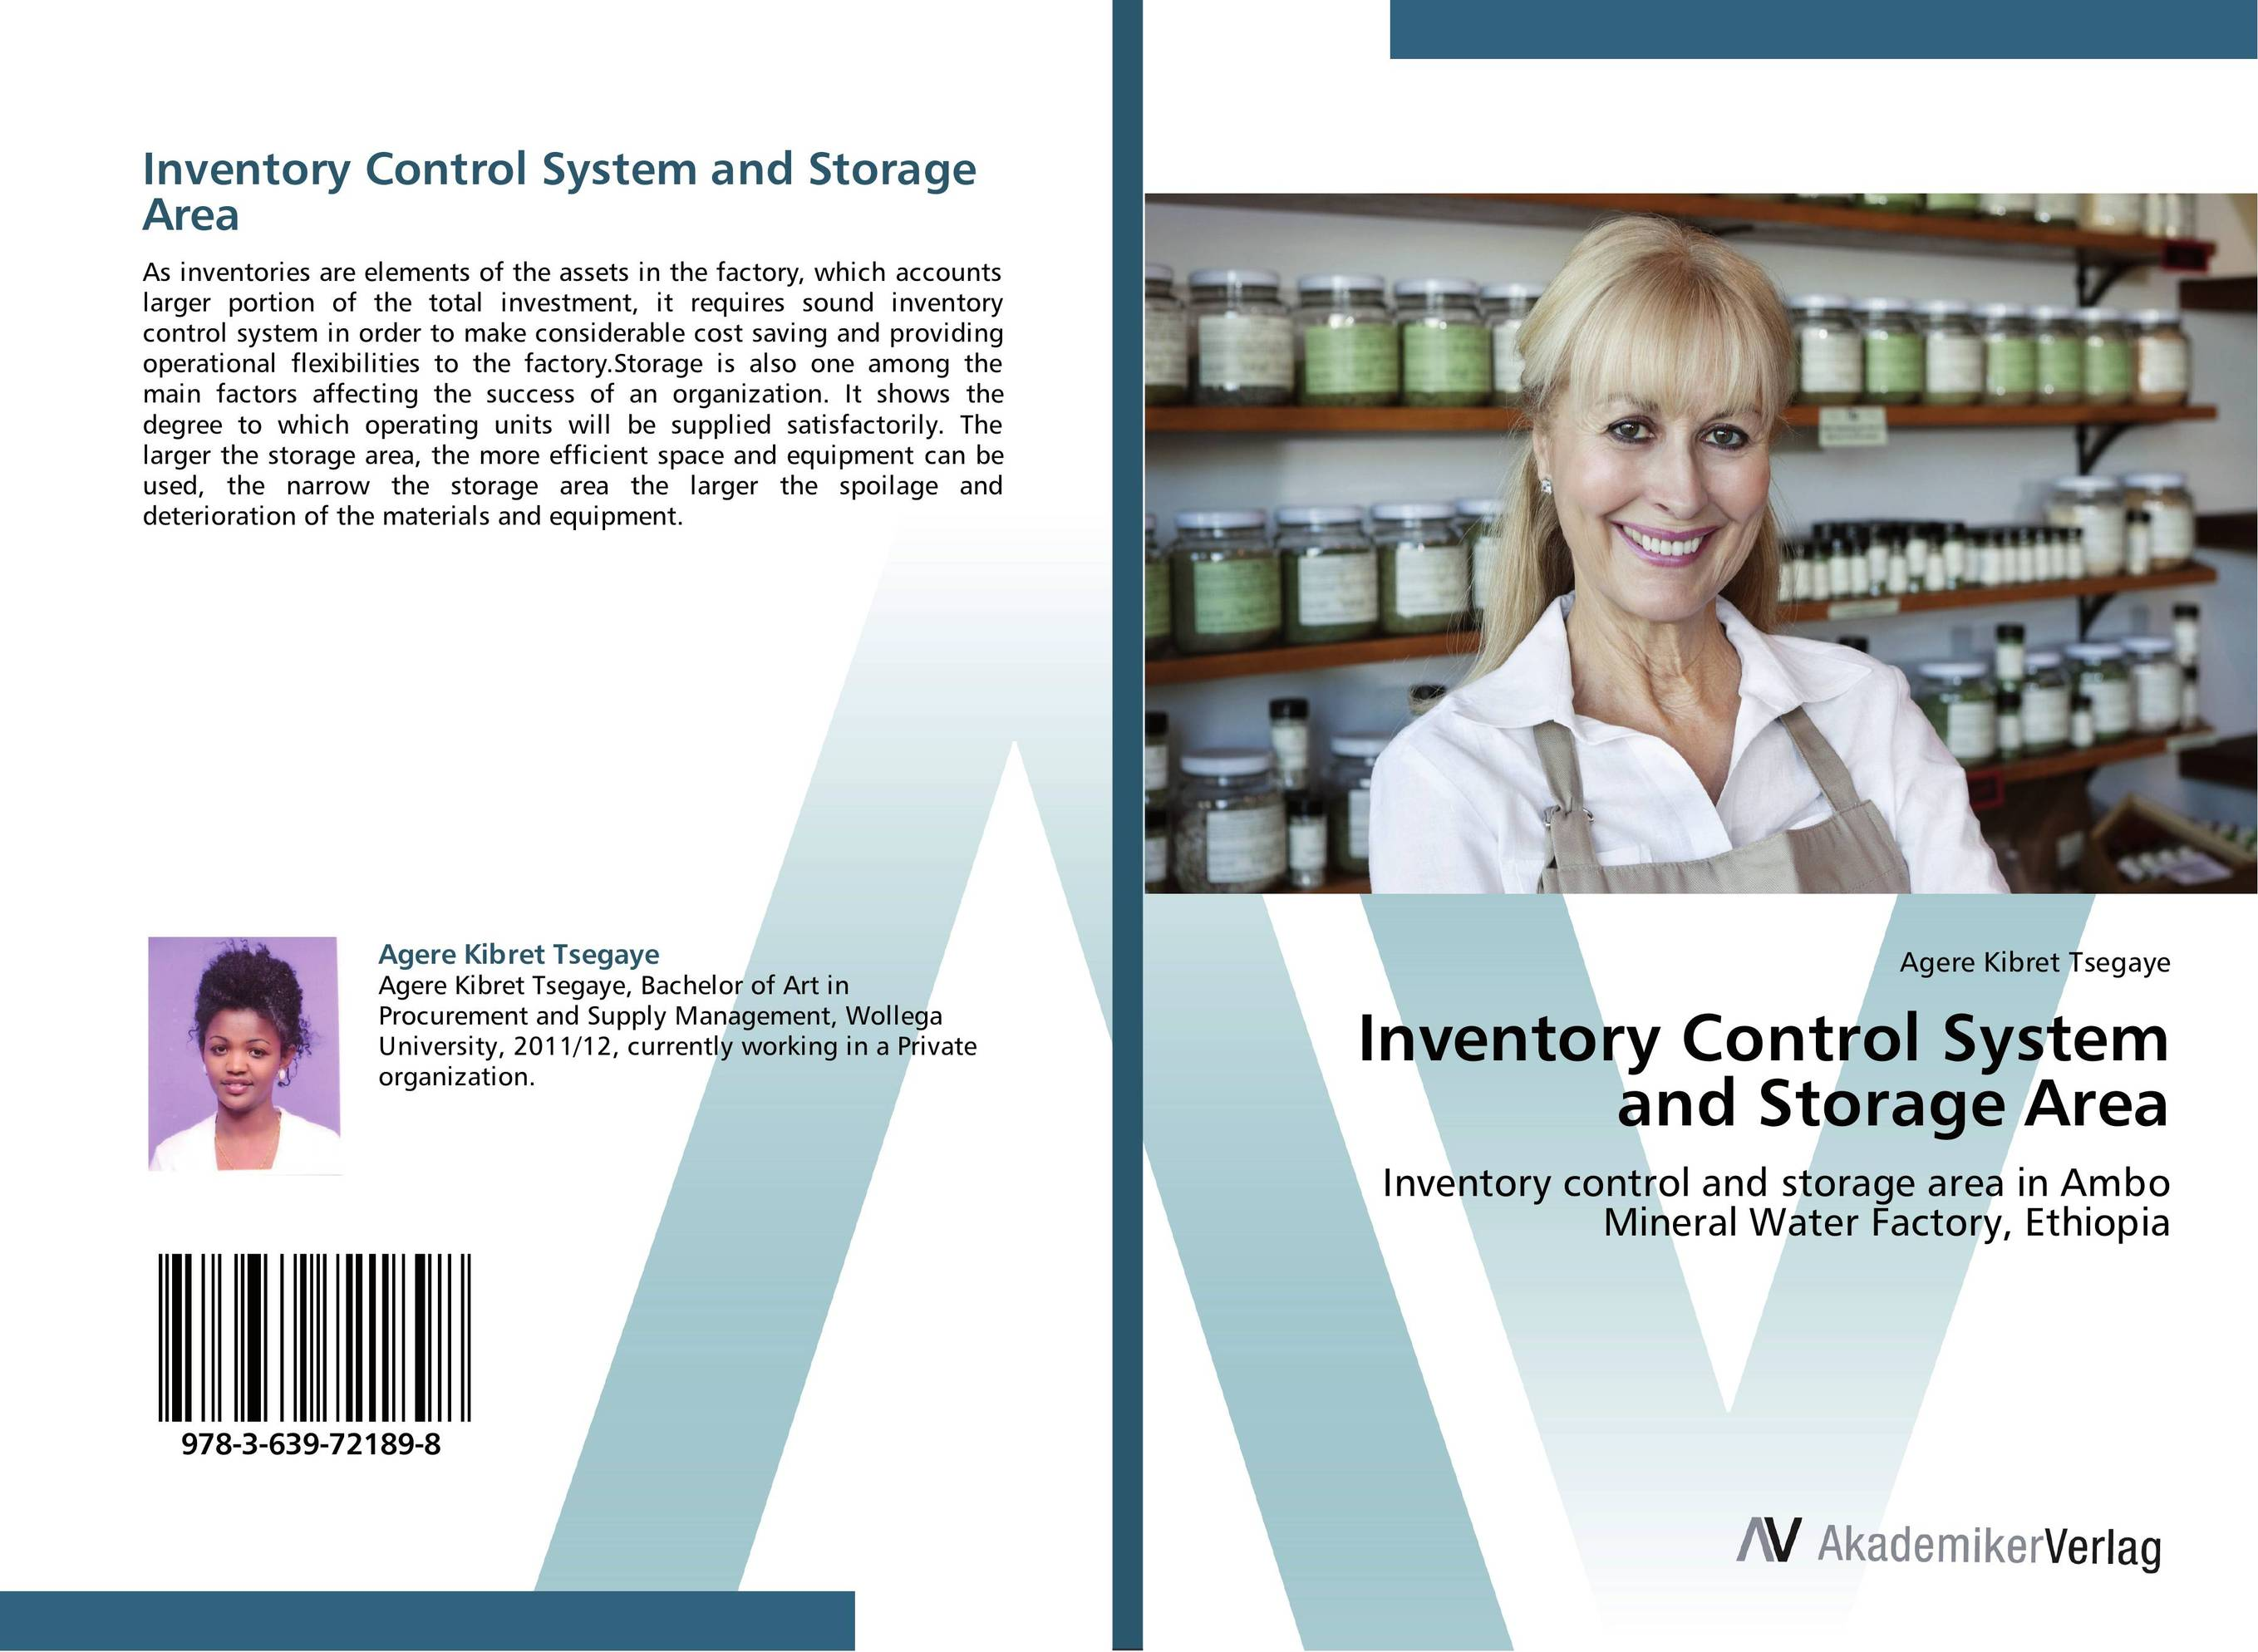 Inventory Control System and Storage Area an area of darkness